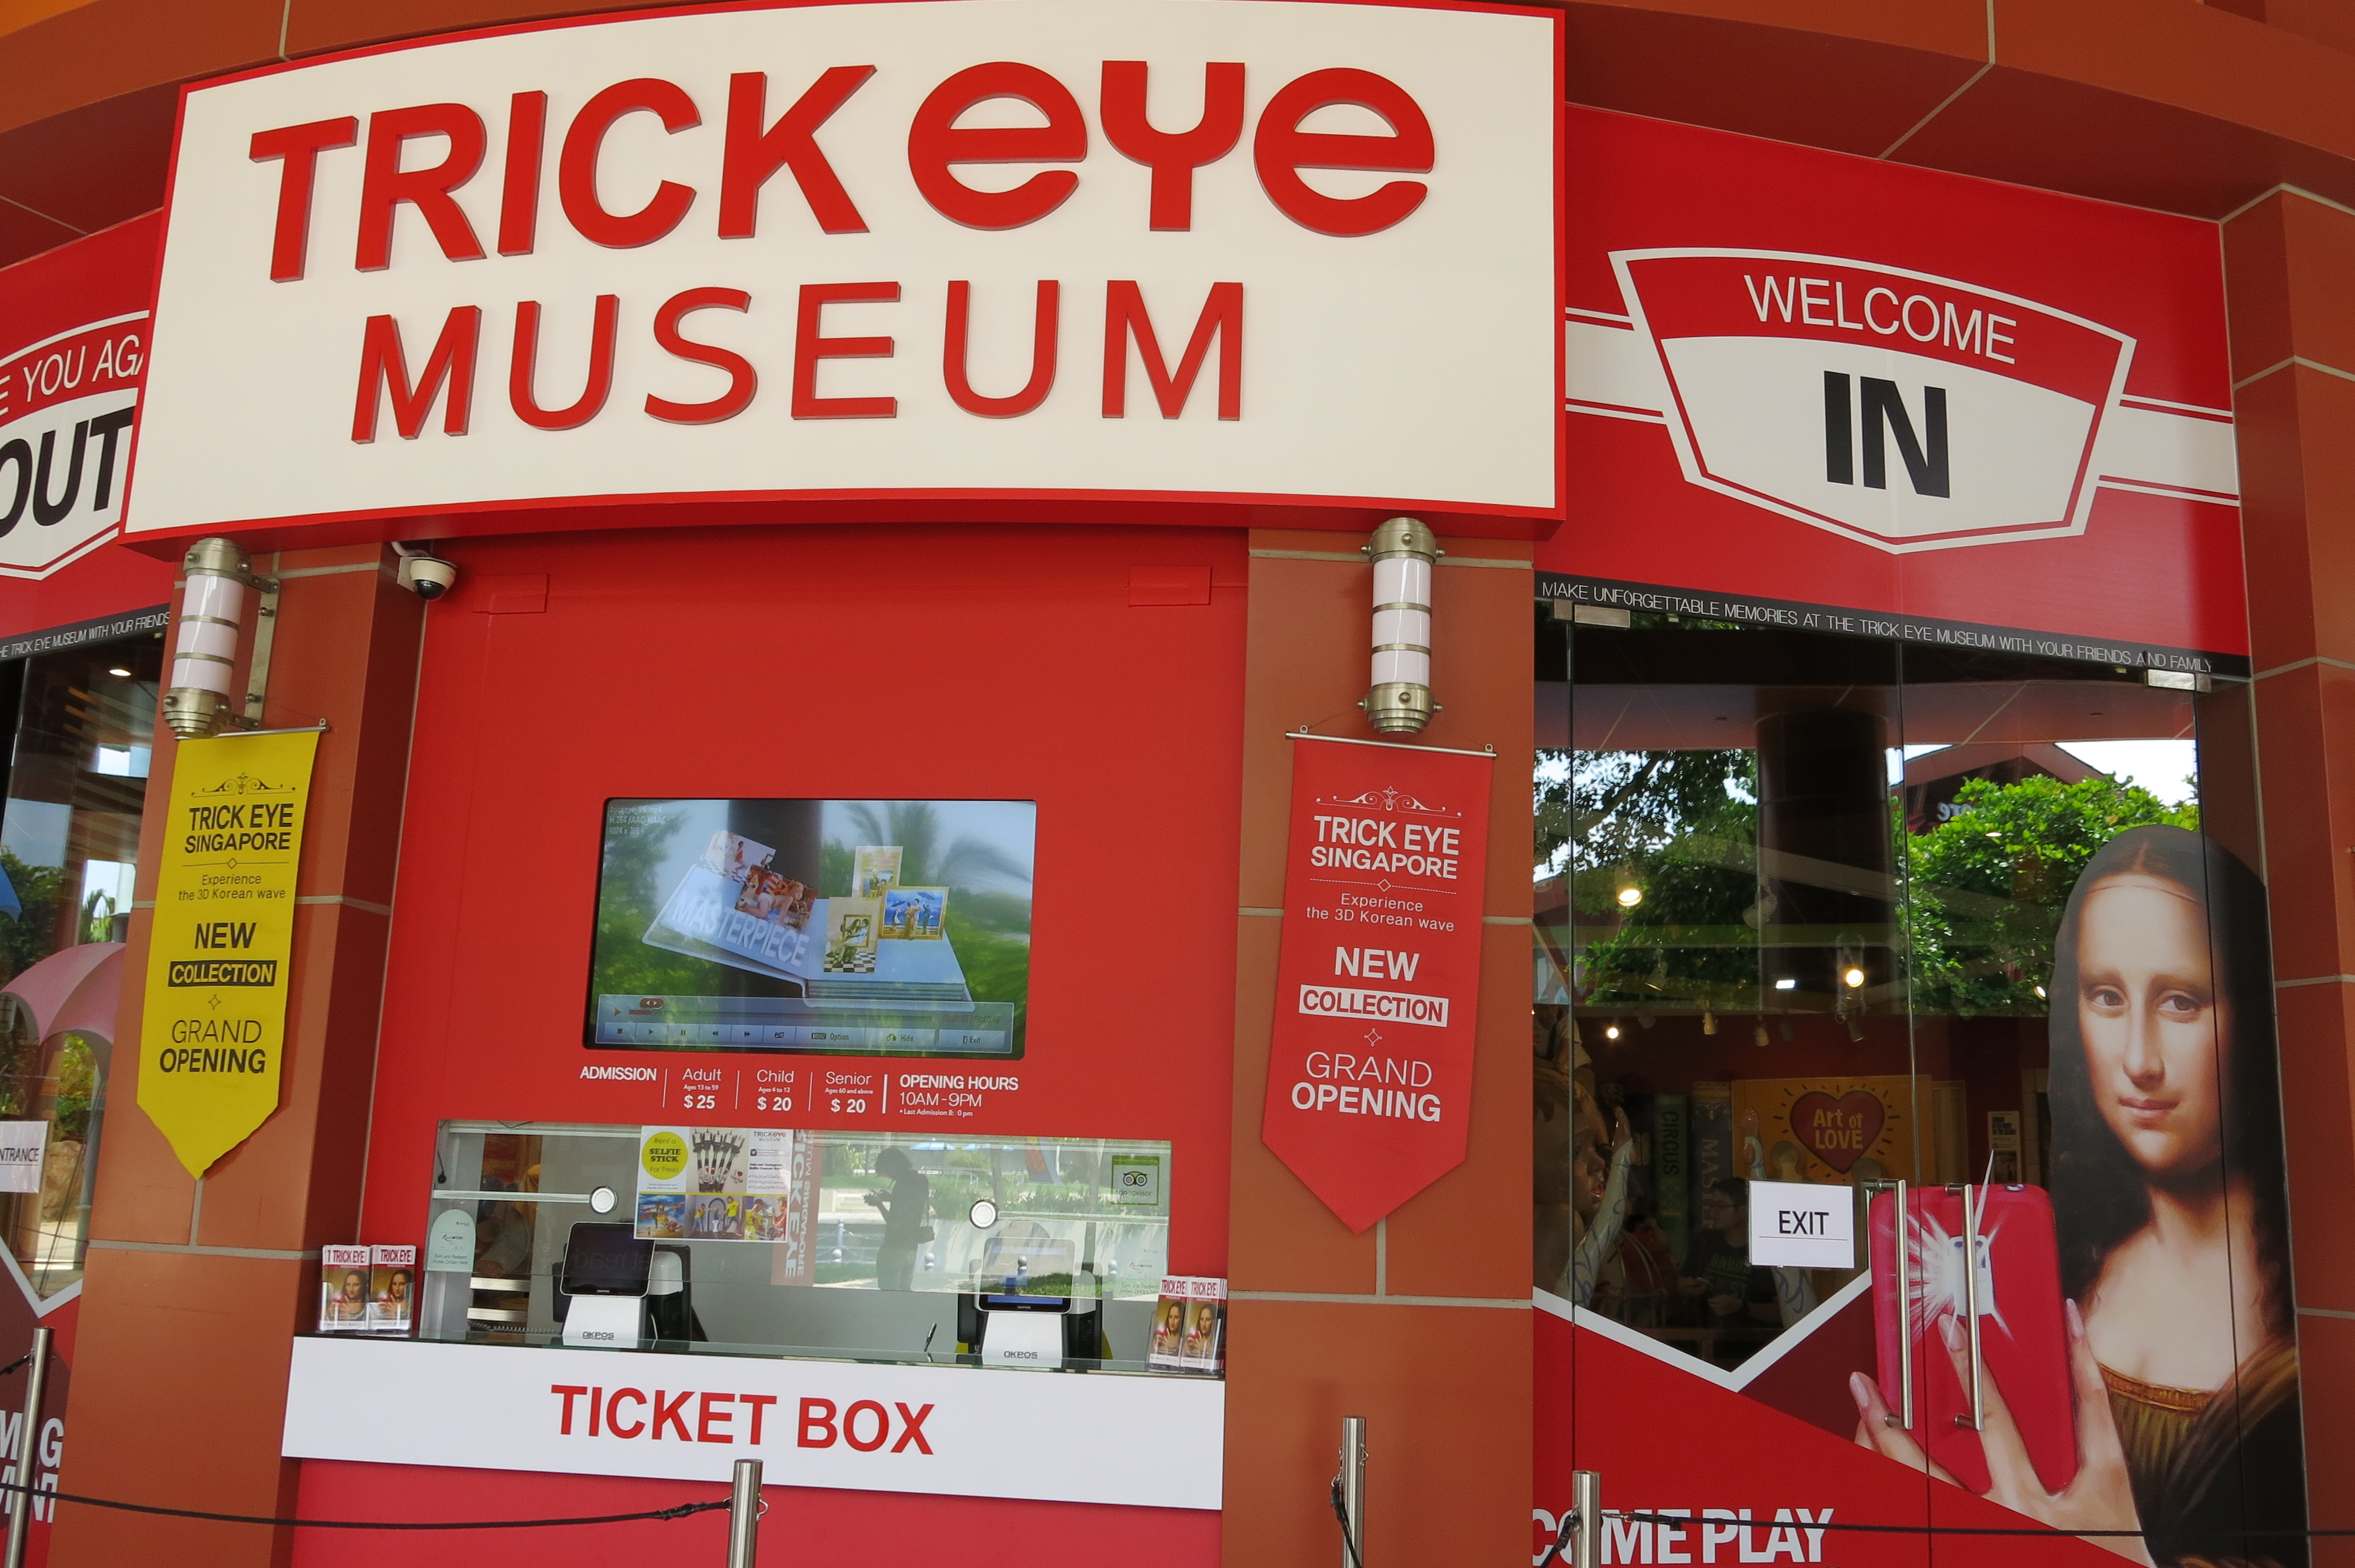 Take A Trip To Trickeye Museum The Influencer Media Popular Tiket Singapore Trick Eye Is Short For Of Which Refers An Art Technique That Turns Two Dimensional Paintings Into Three Images Through